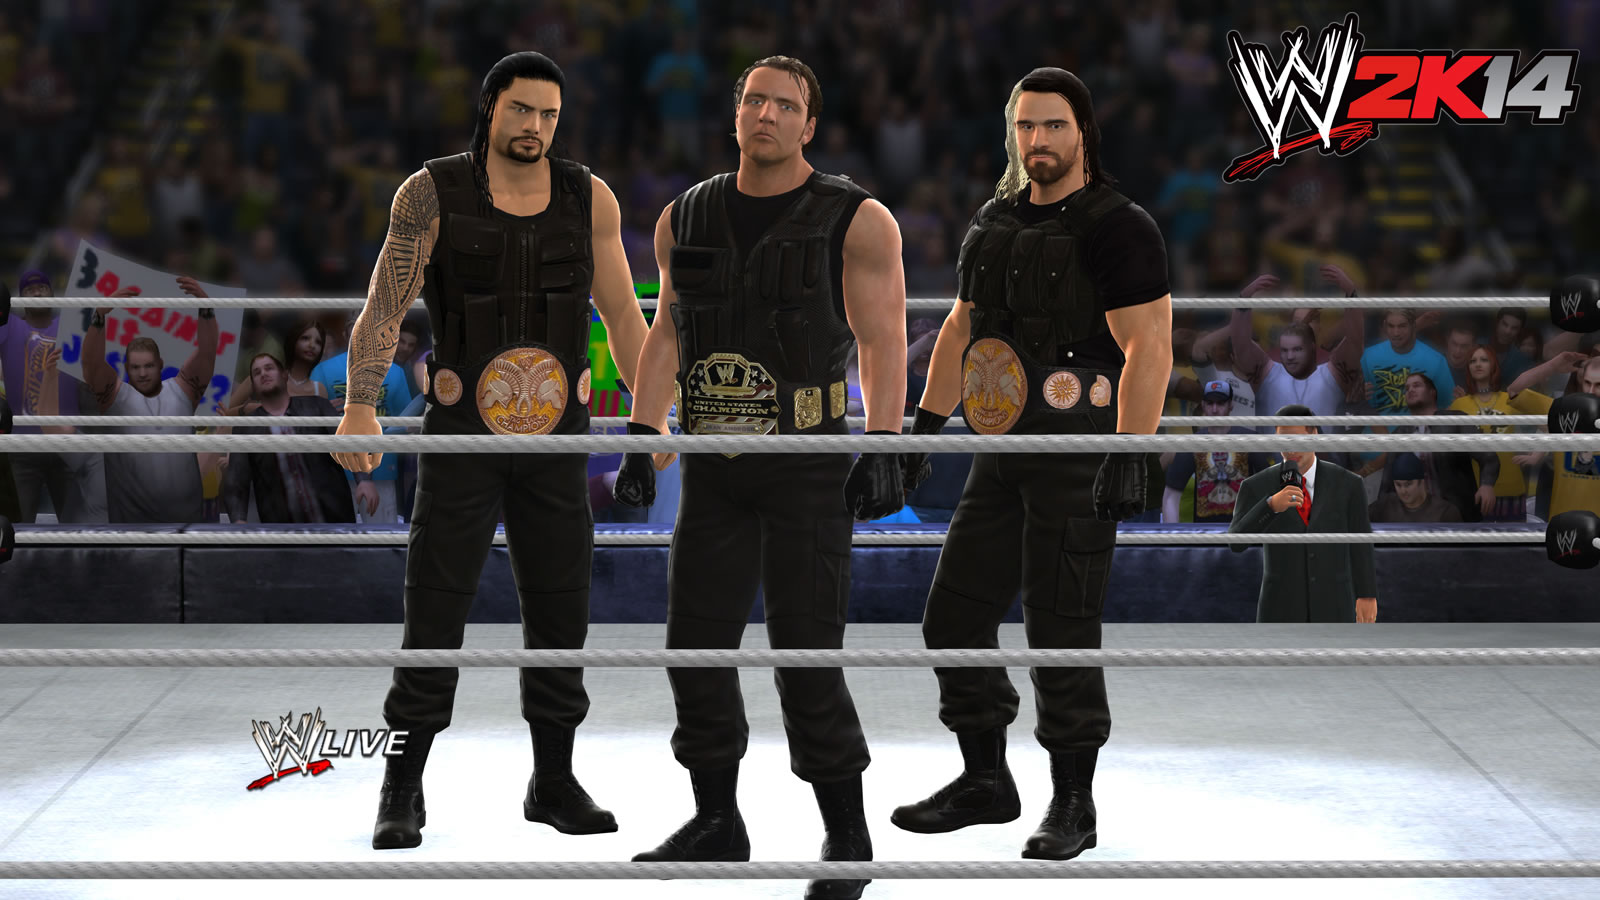 I believe in The Shield more than THQ's ability to keep the roster consistent and up-to-date.